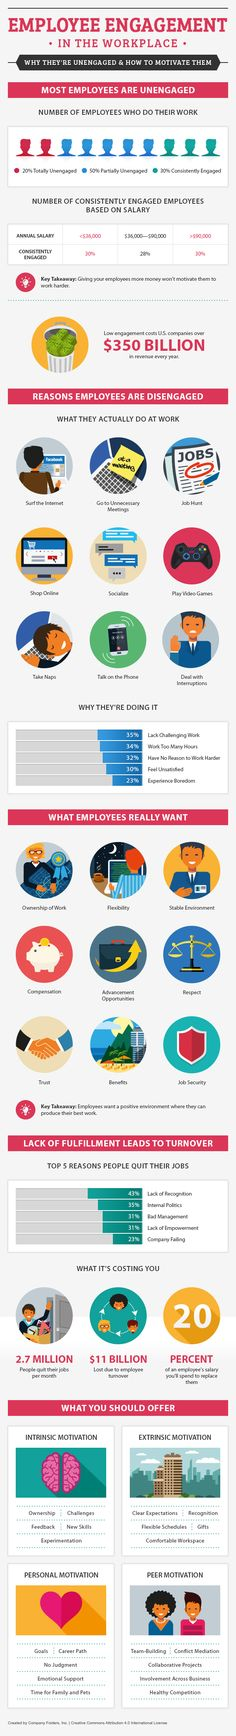 [Infographic] How You Can Motivate Employees